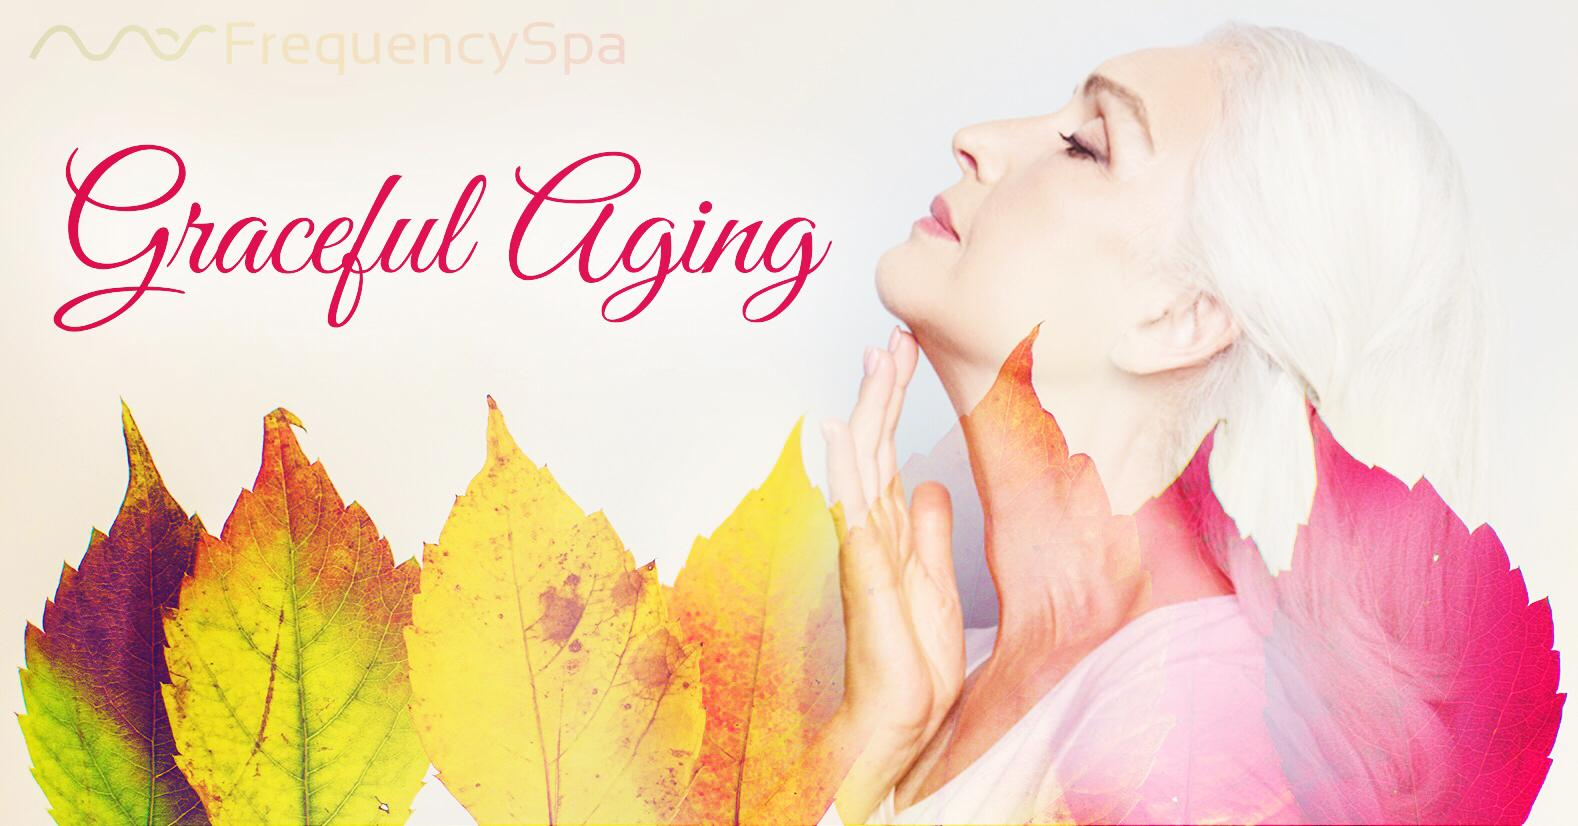 mas-sajady-program-frequency-spa-graceful-aging.jpeg